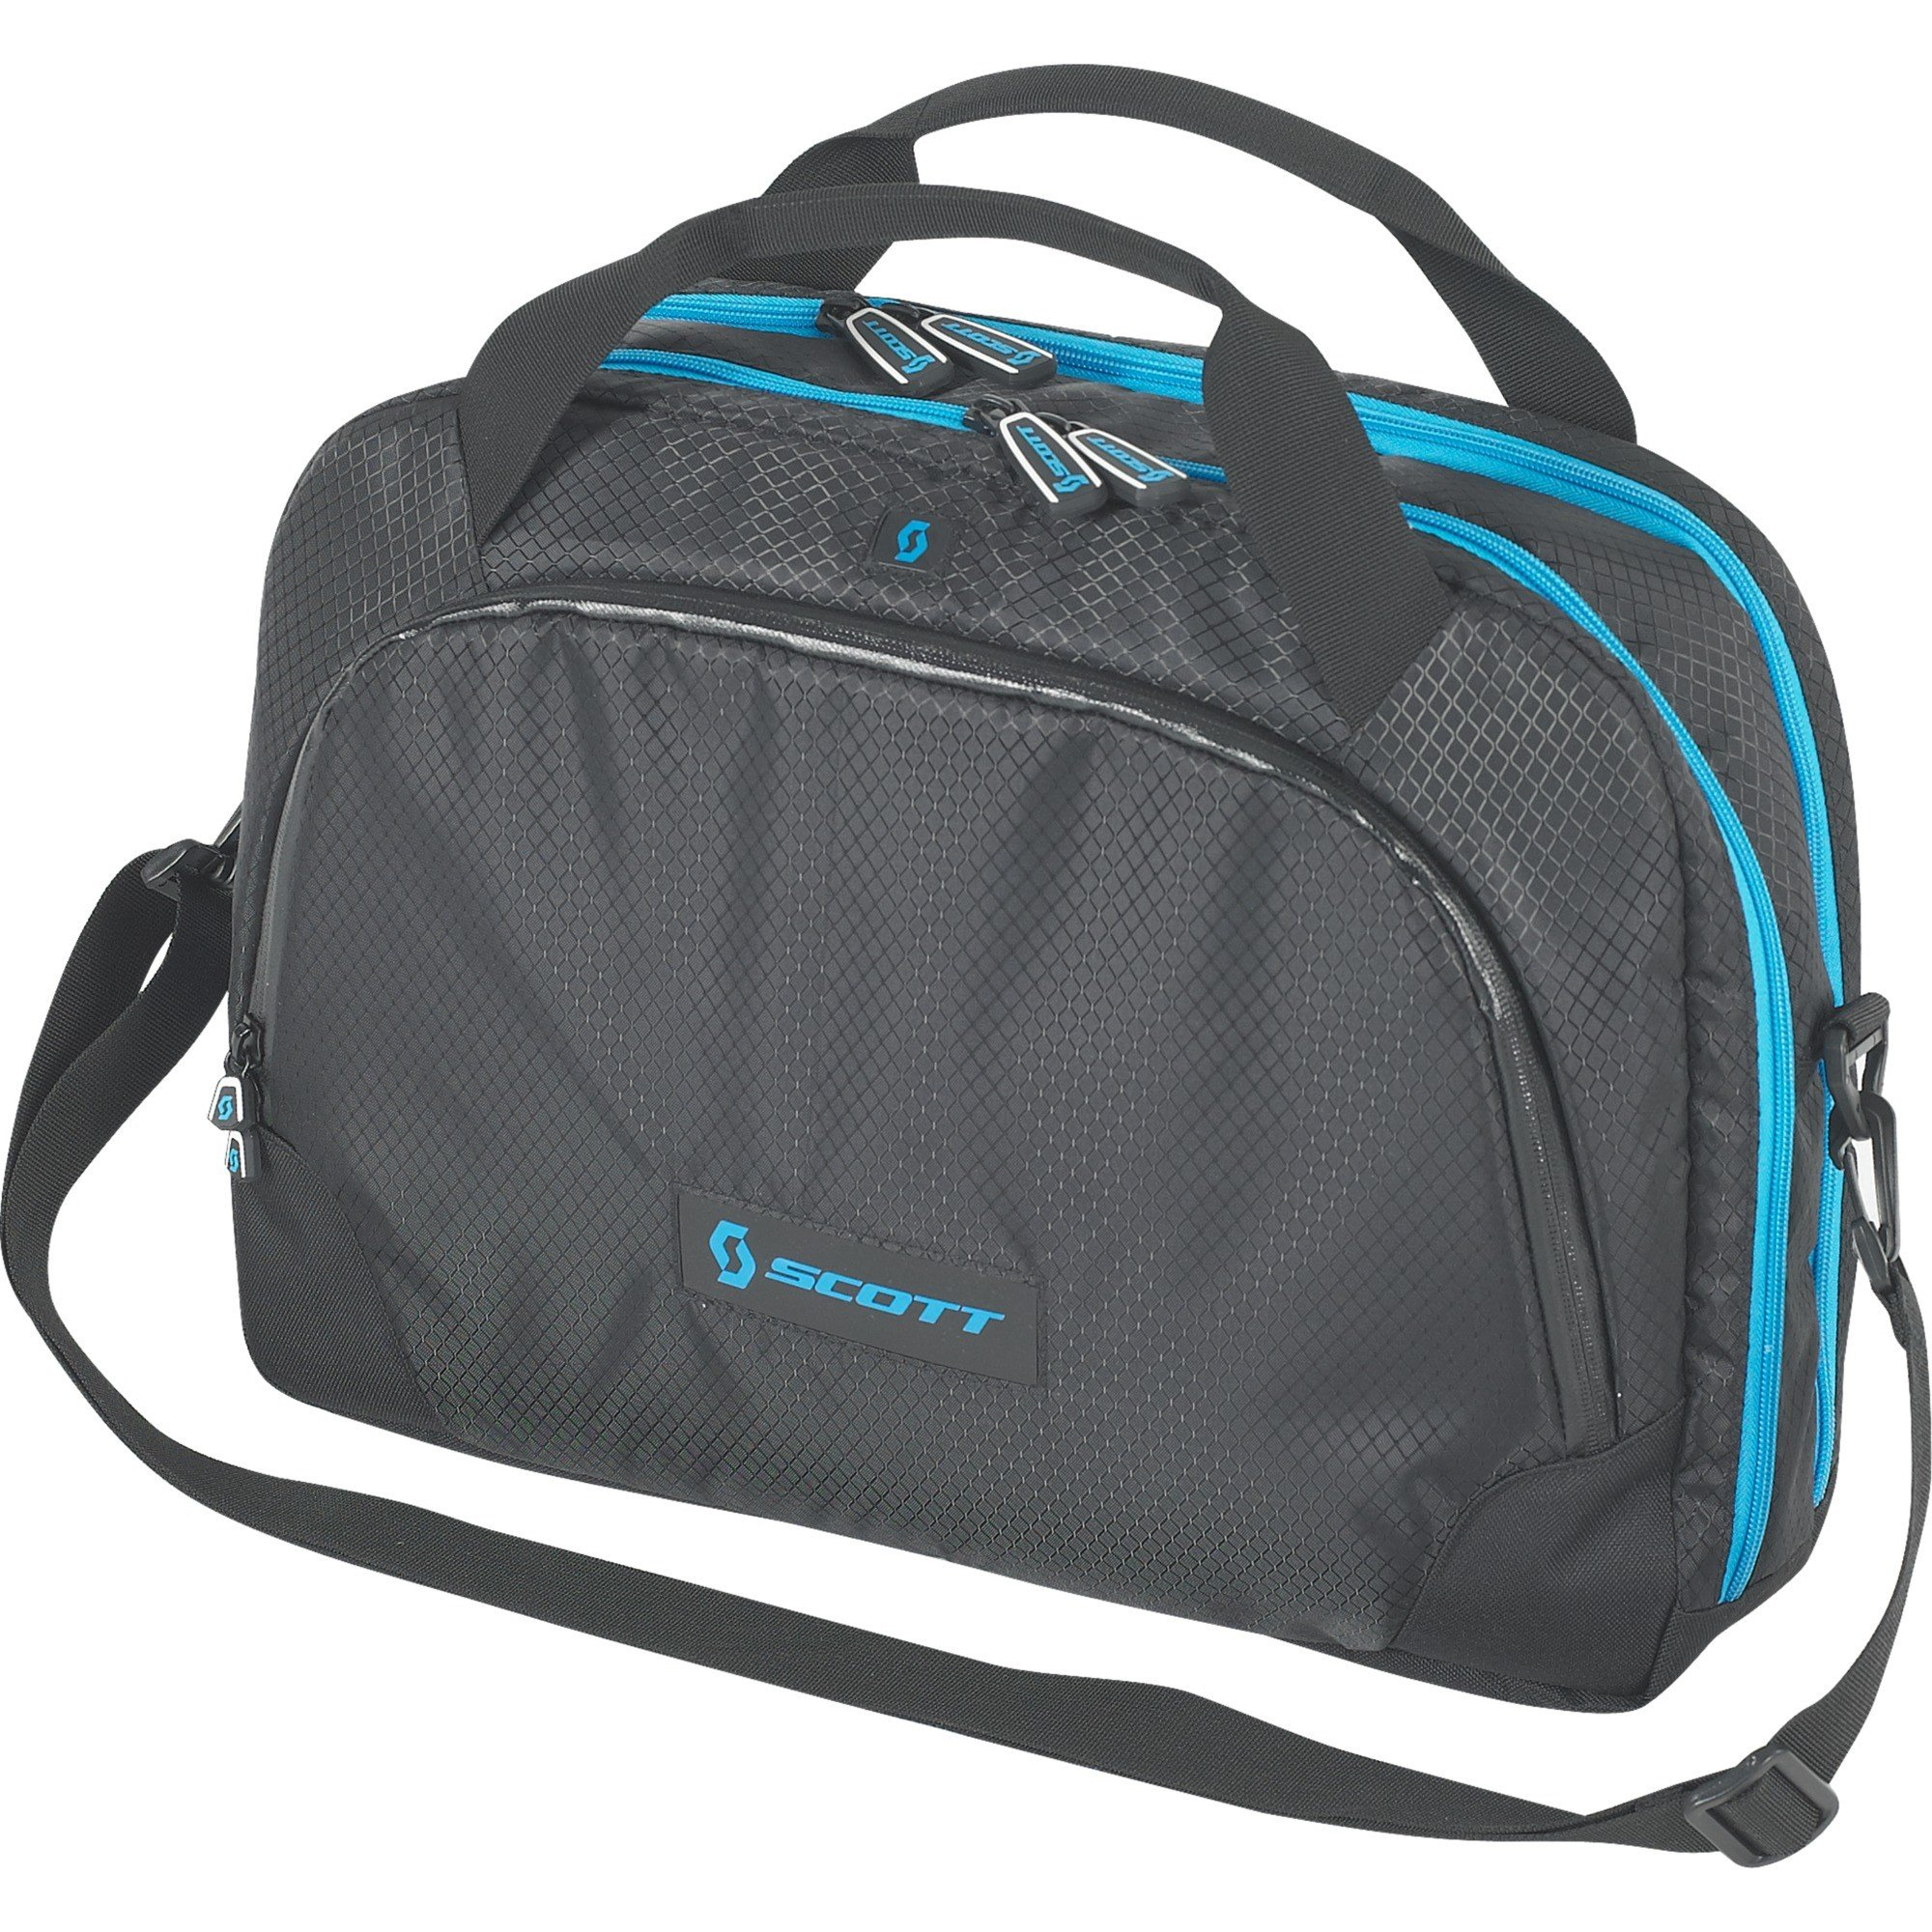 SCOTT Laptop Messenger 2013